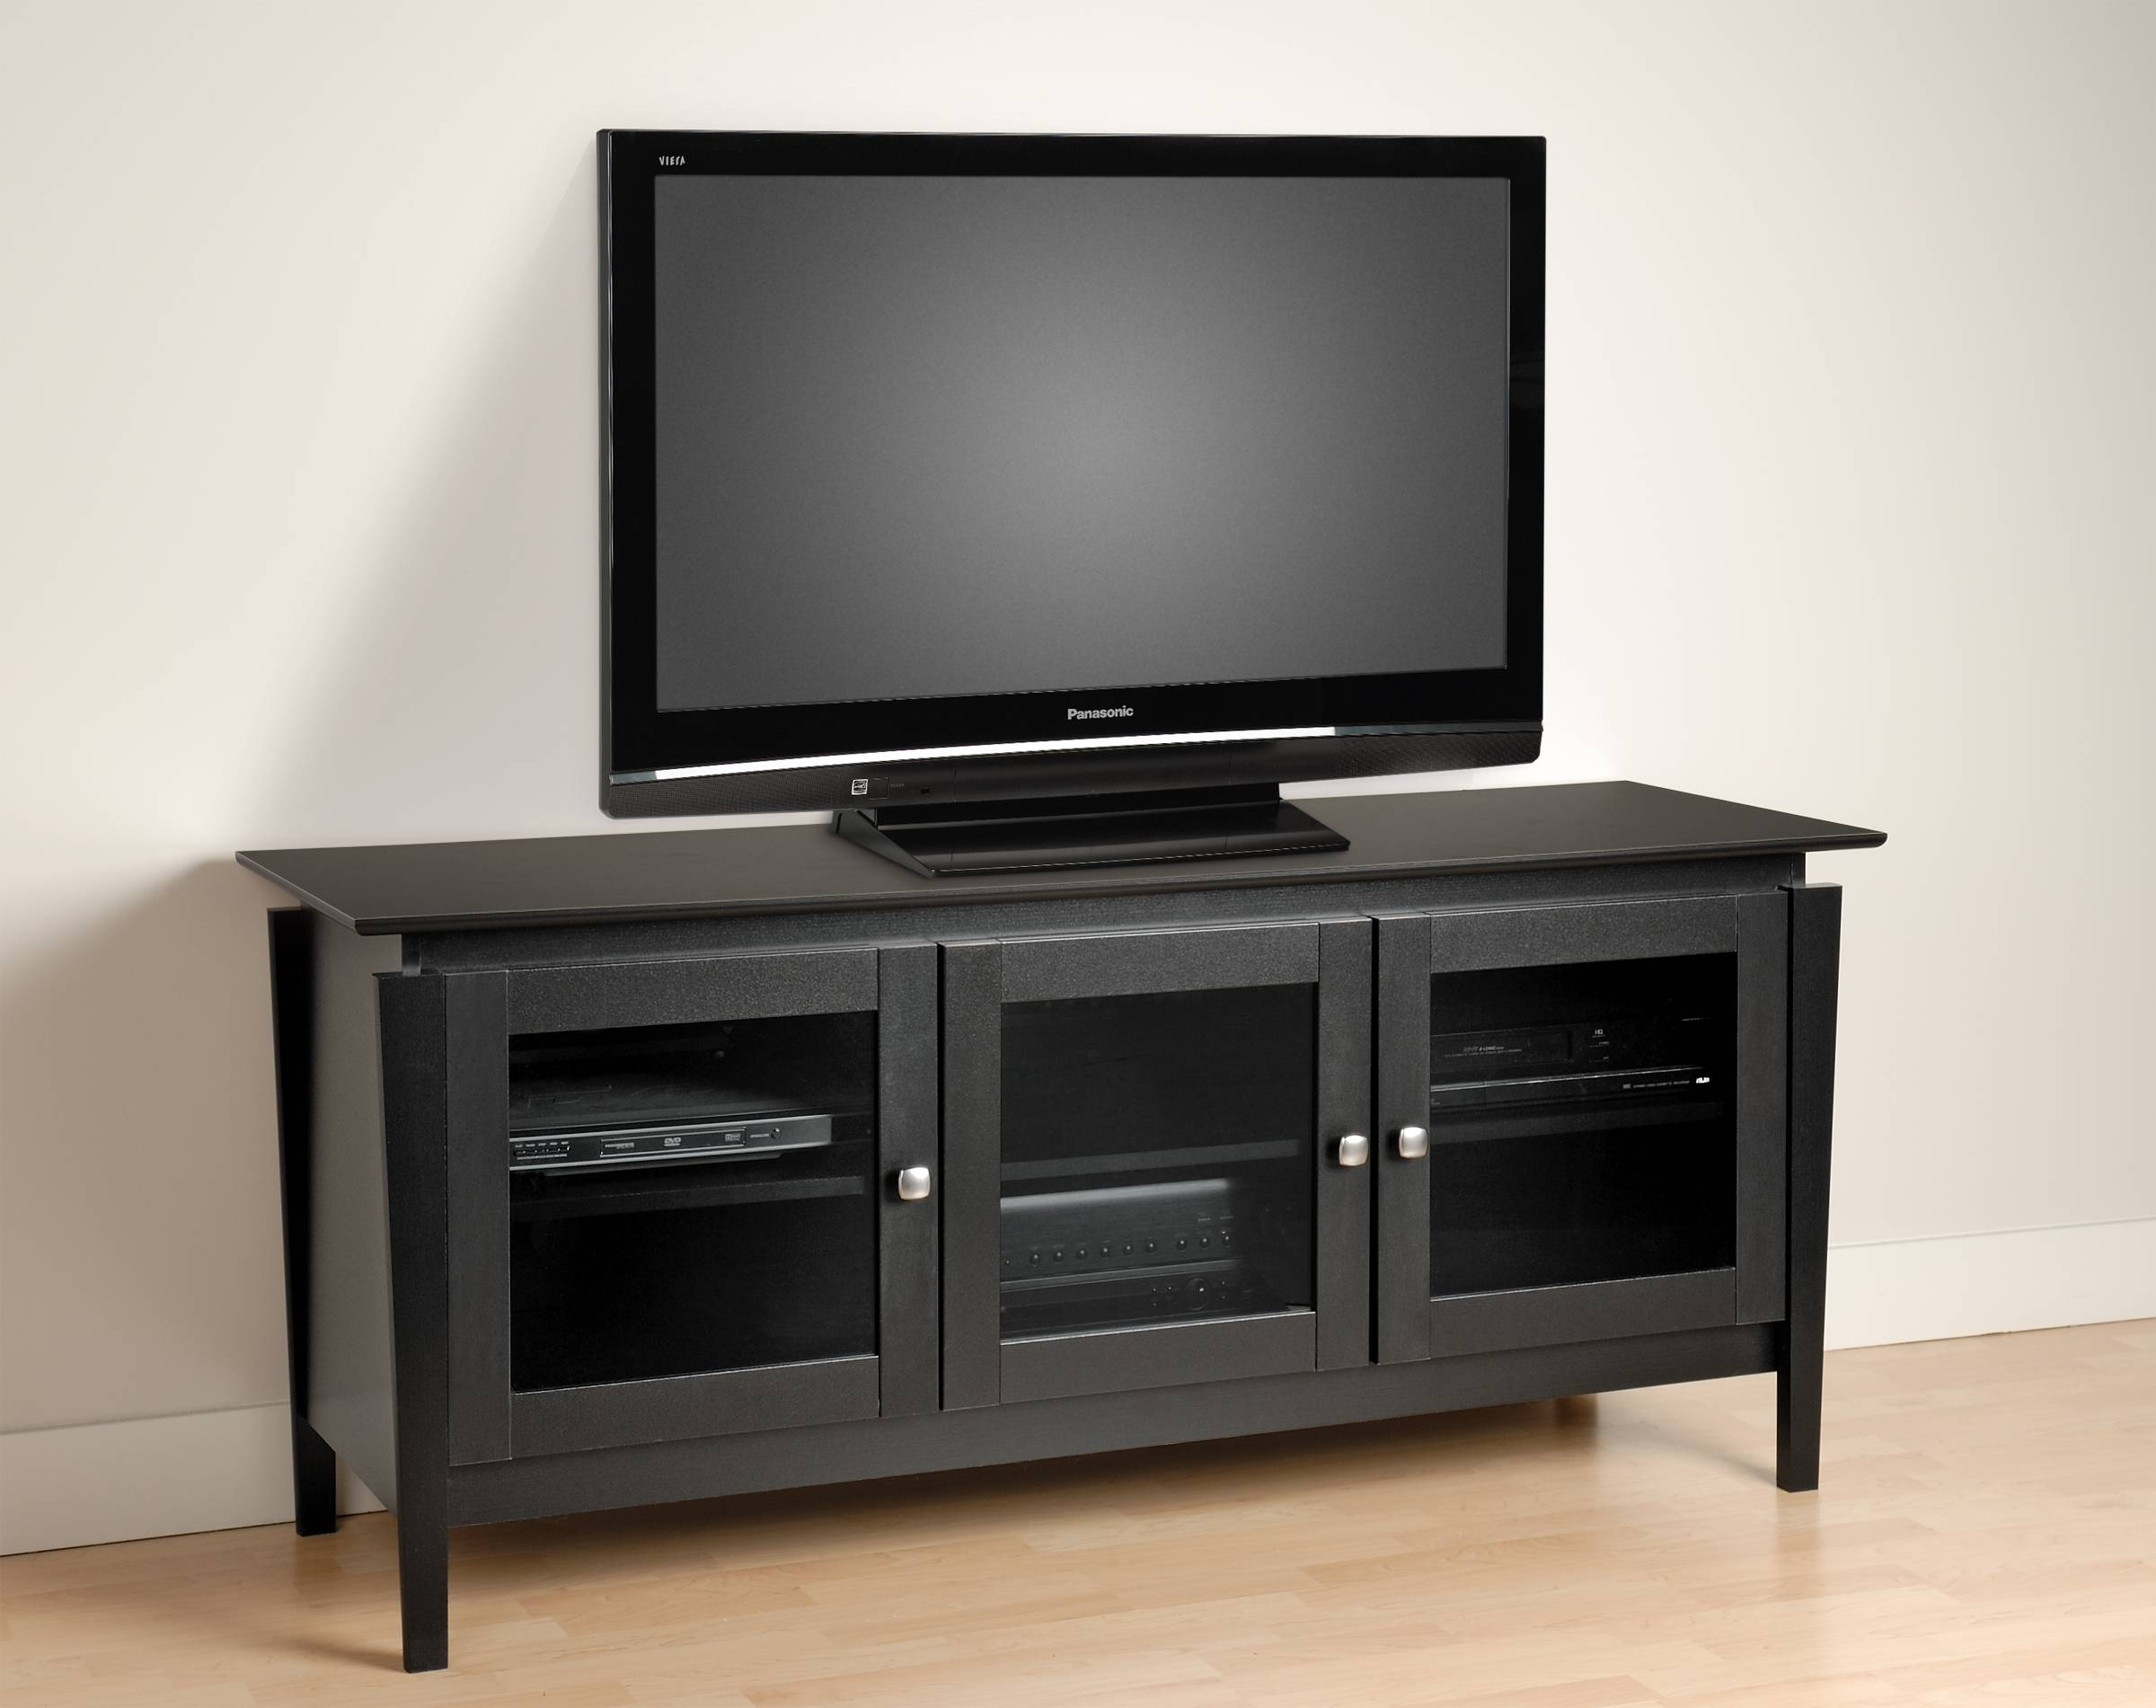 Black Wooden Tv Cabinets With Glass Doors And Steel Knob On Short Inside Corner Tv Cabinets With Glass Doors (View 2 of 15)